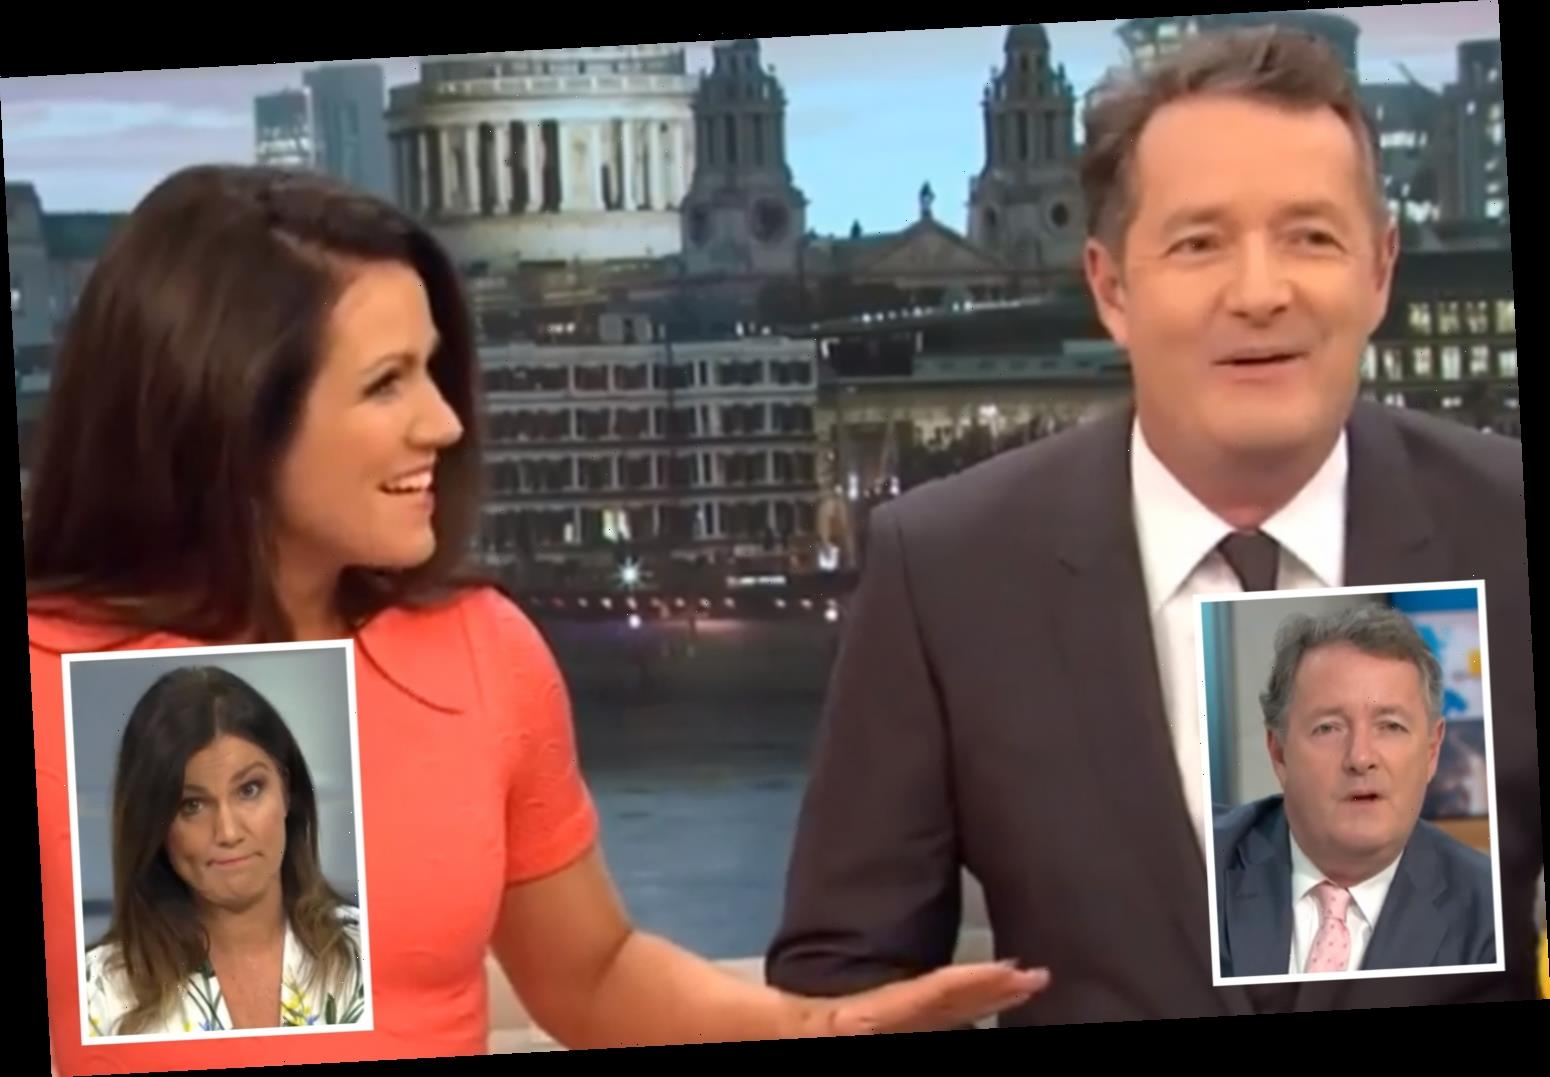 Susanna Reid shocked at 'slimmer' throwback with Piers Morgan as he apologises for 'bullying' over government statement